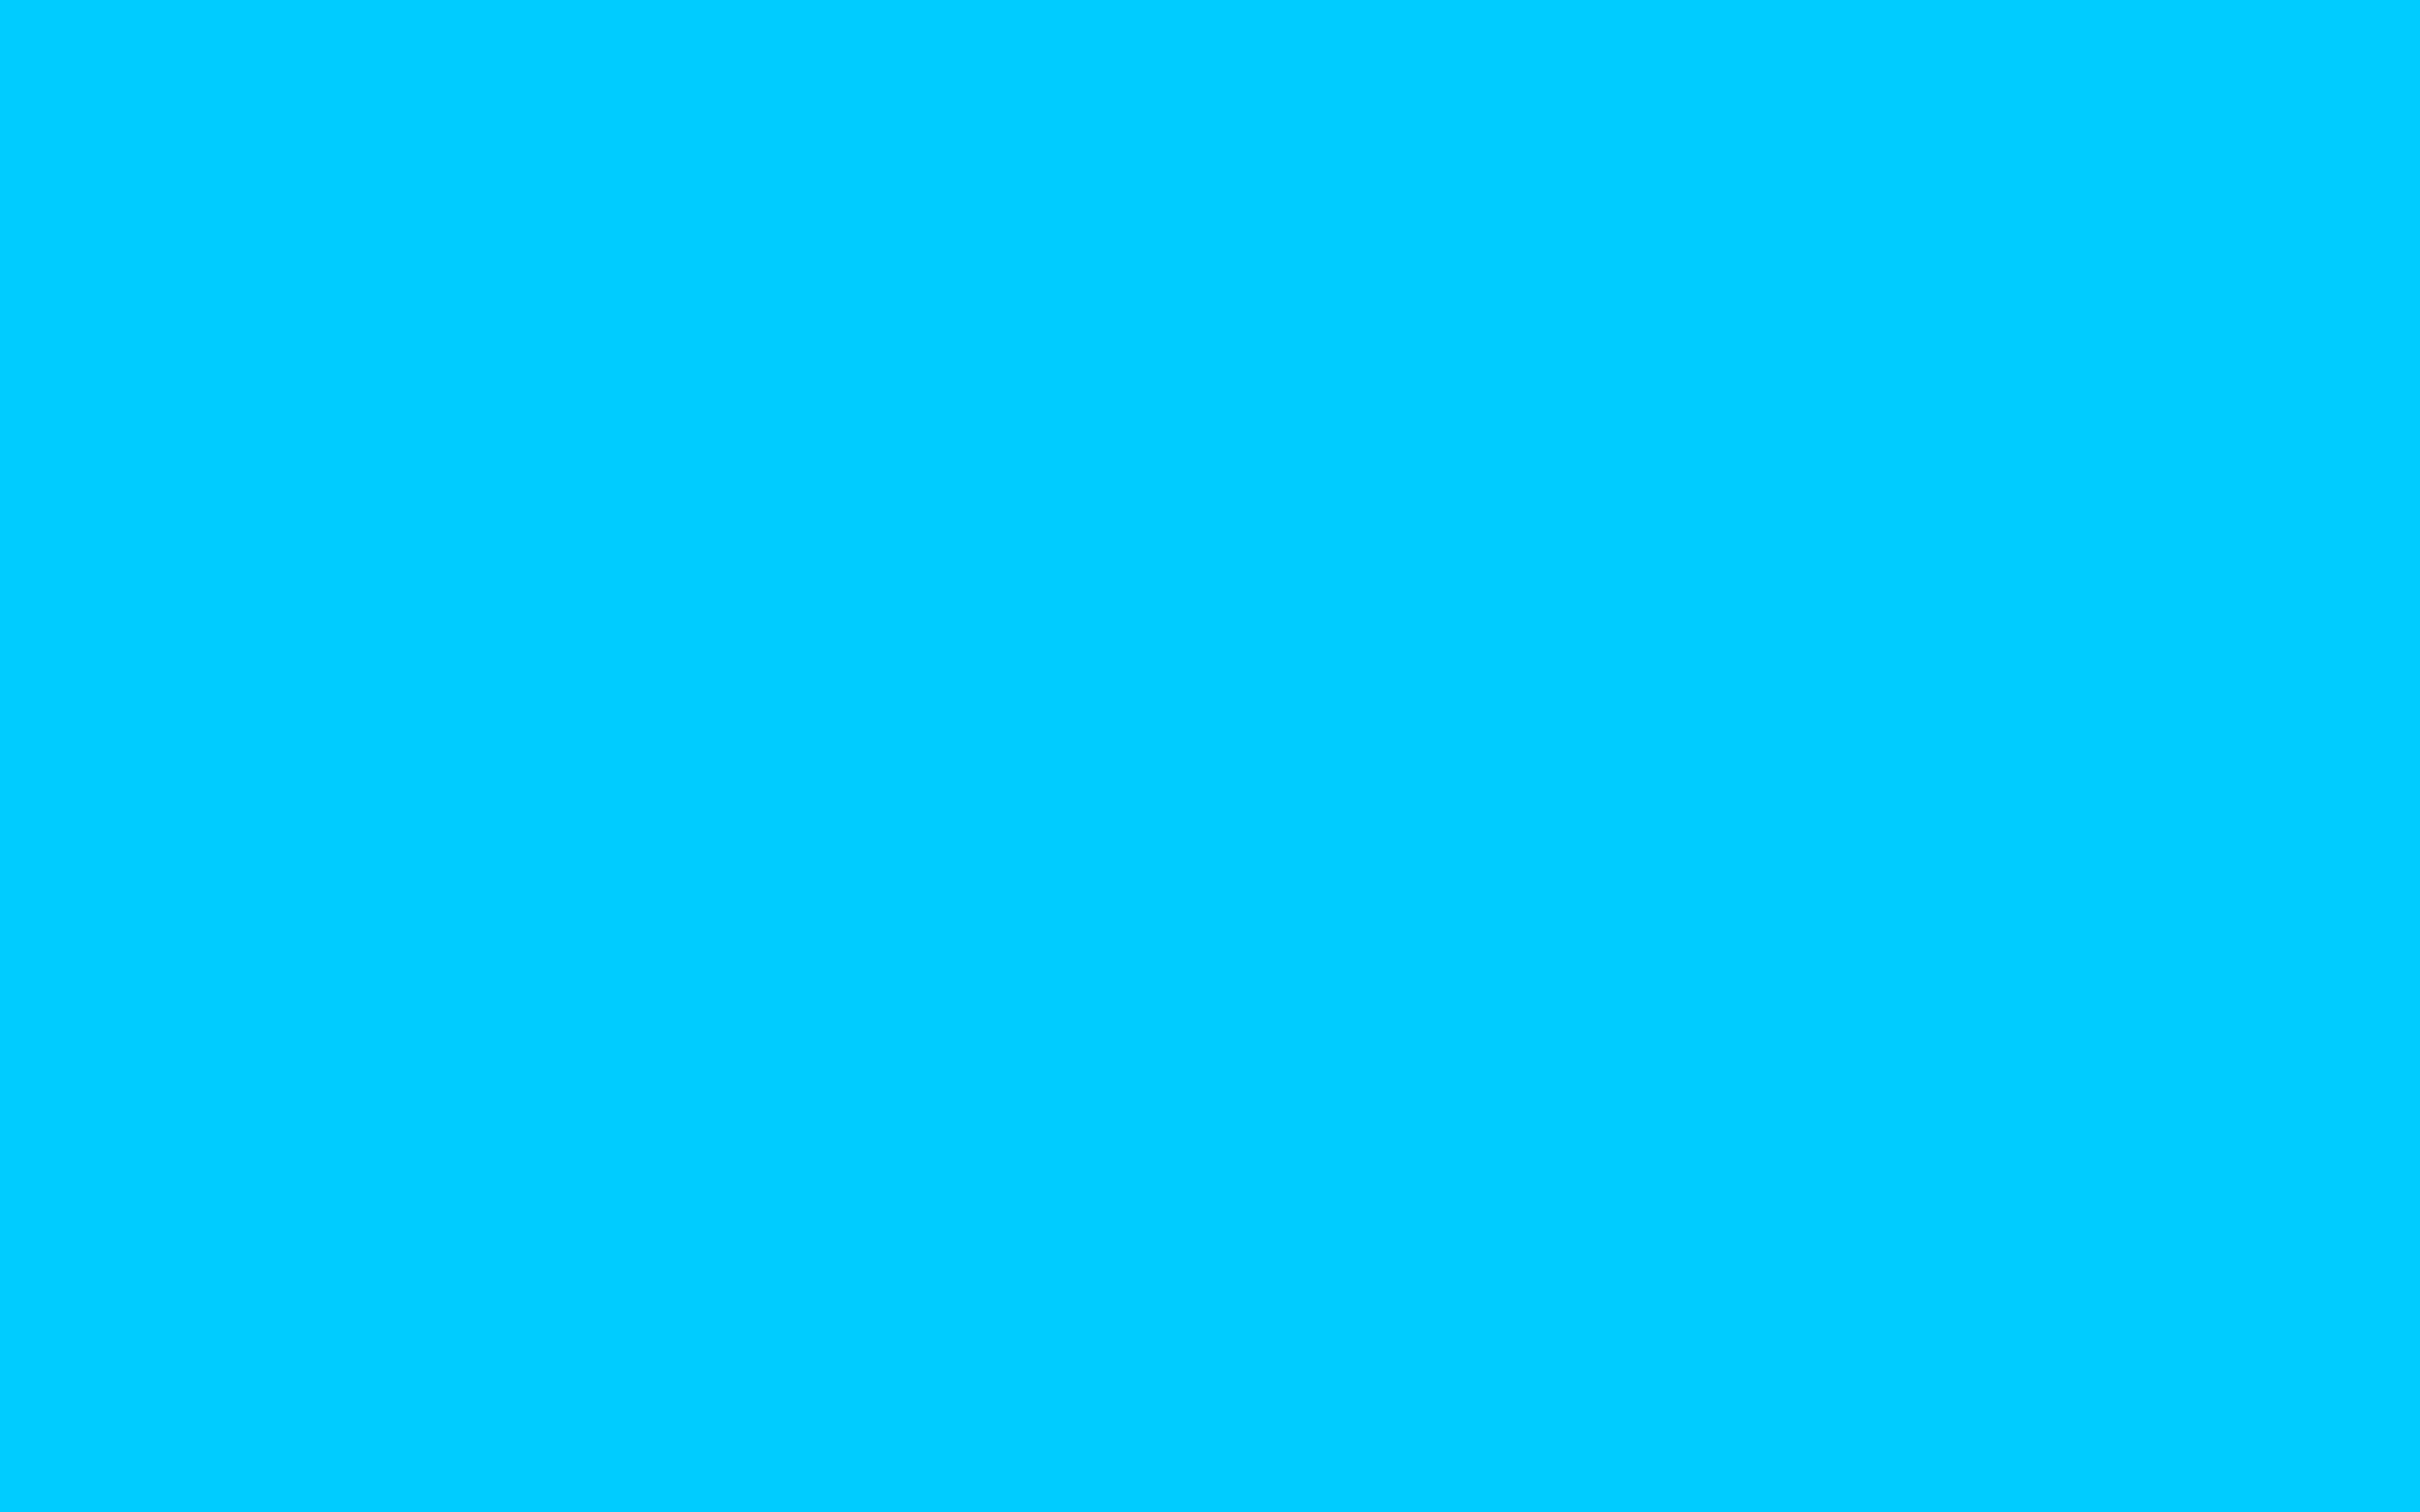 plain blue background - photo #46